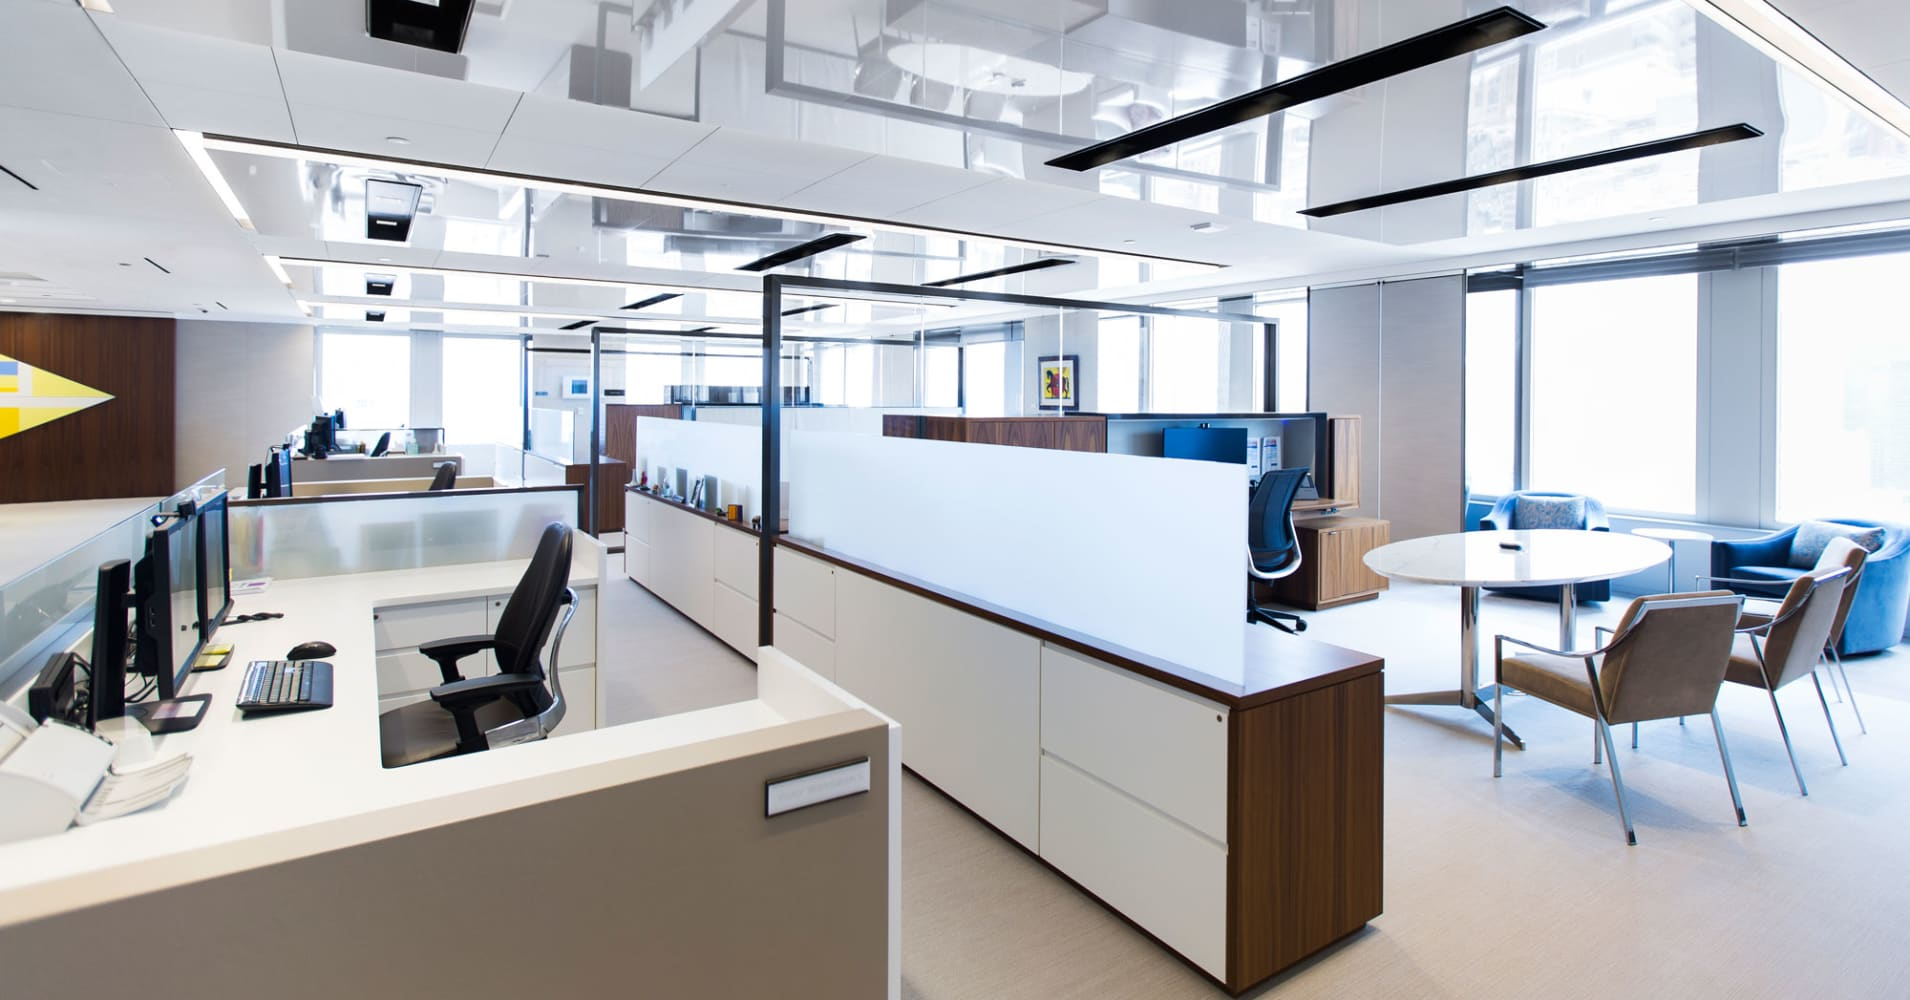 Citi's new global headquarters features open office space that allows for easier interaction between colleagues and is designed to promote communication across teams and functions.